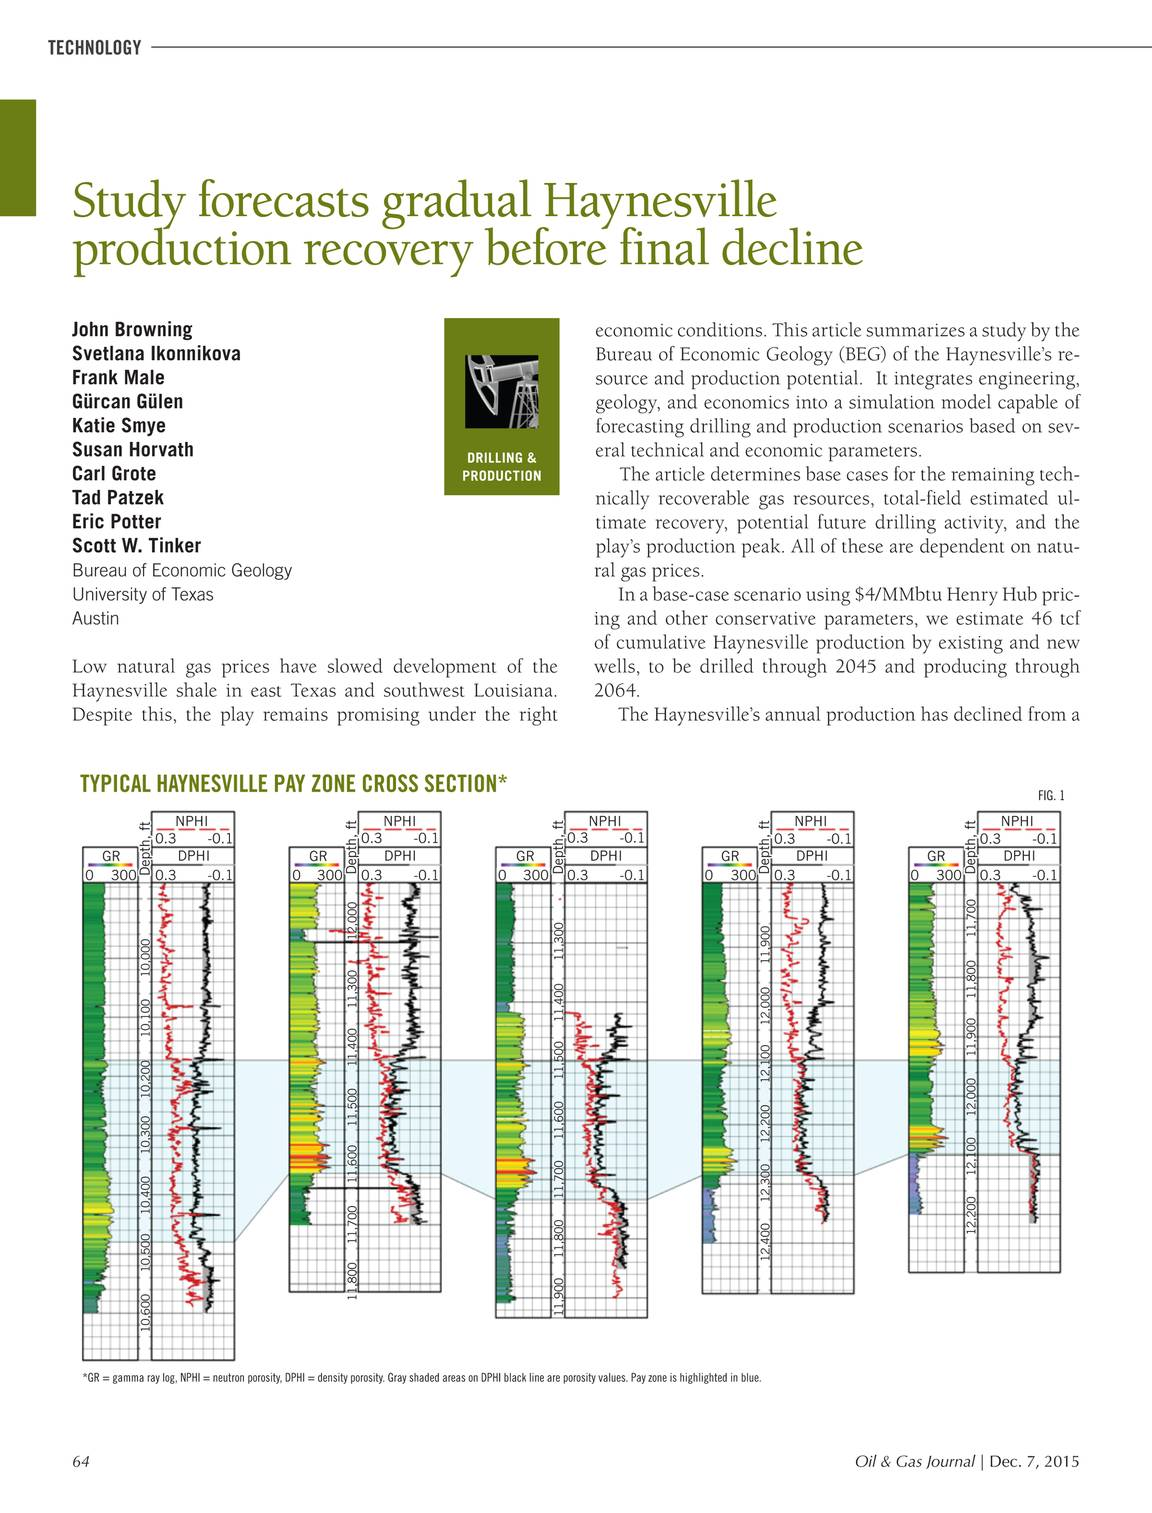 Oil & Gas Journal - December 07, 2015 - page 63